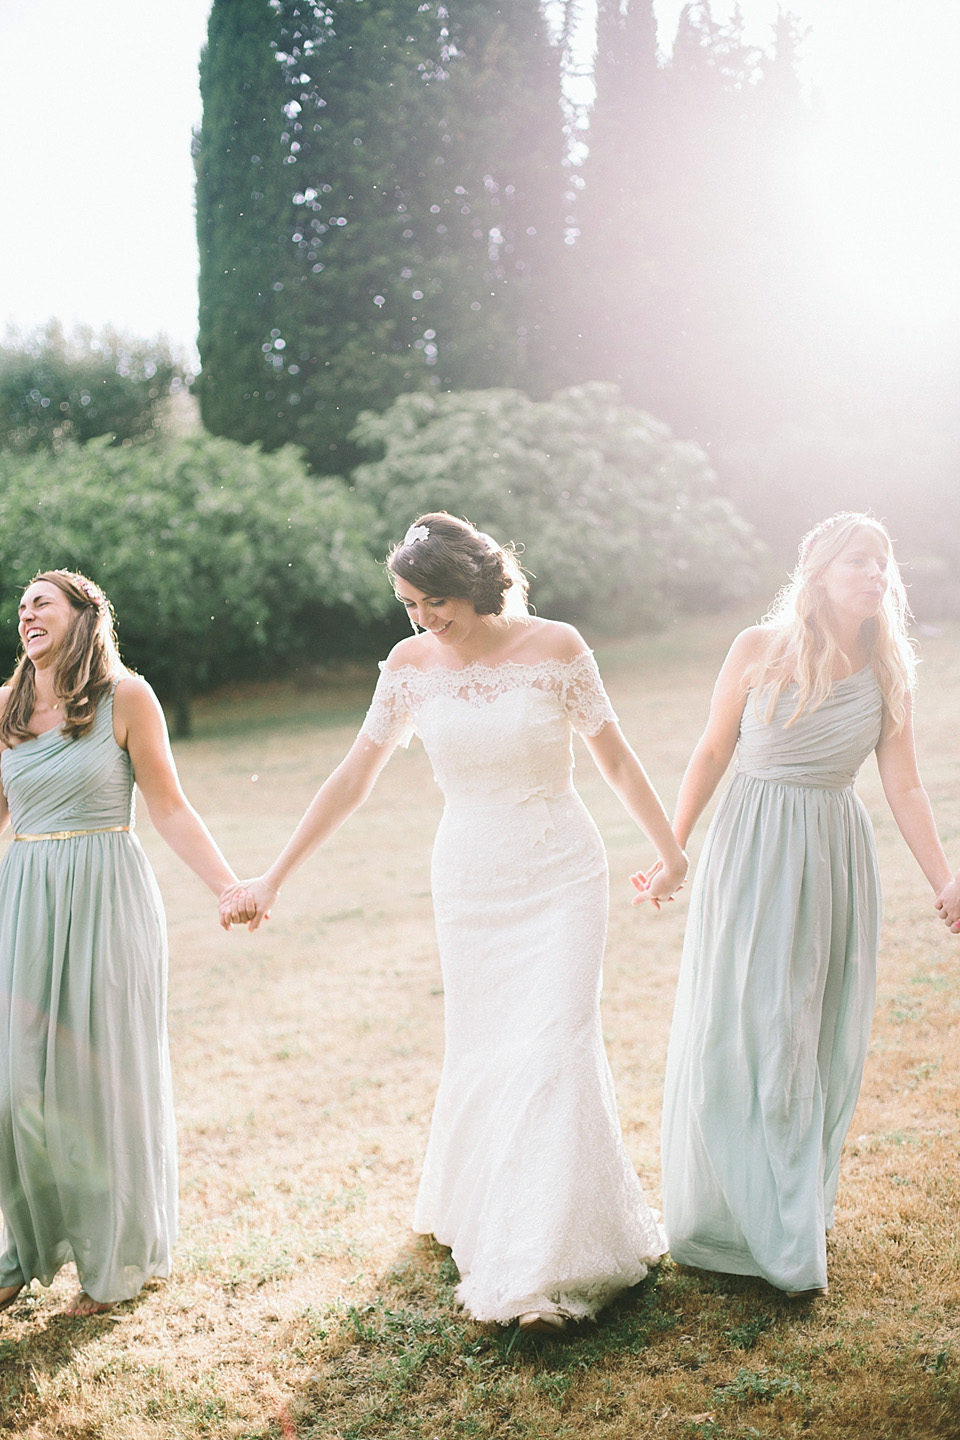 Stewart Parvin in Provence: An Elegant French Summer Wedding